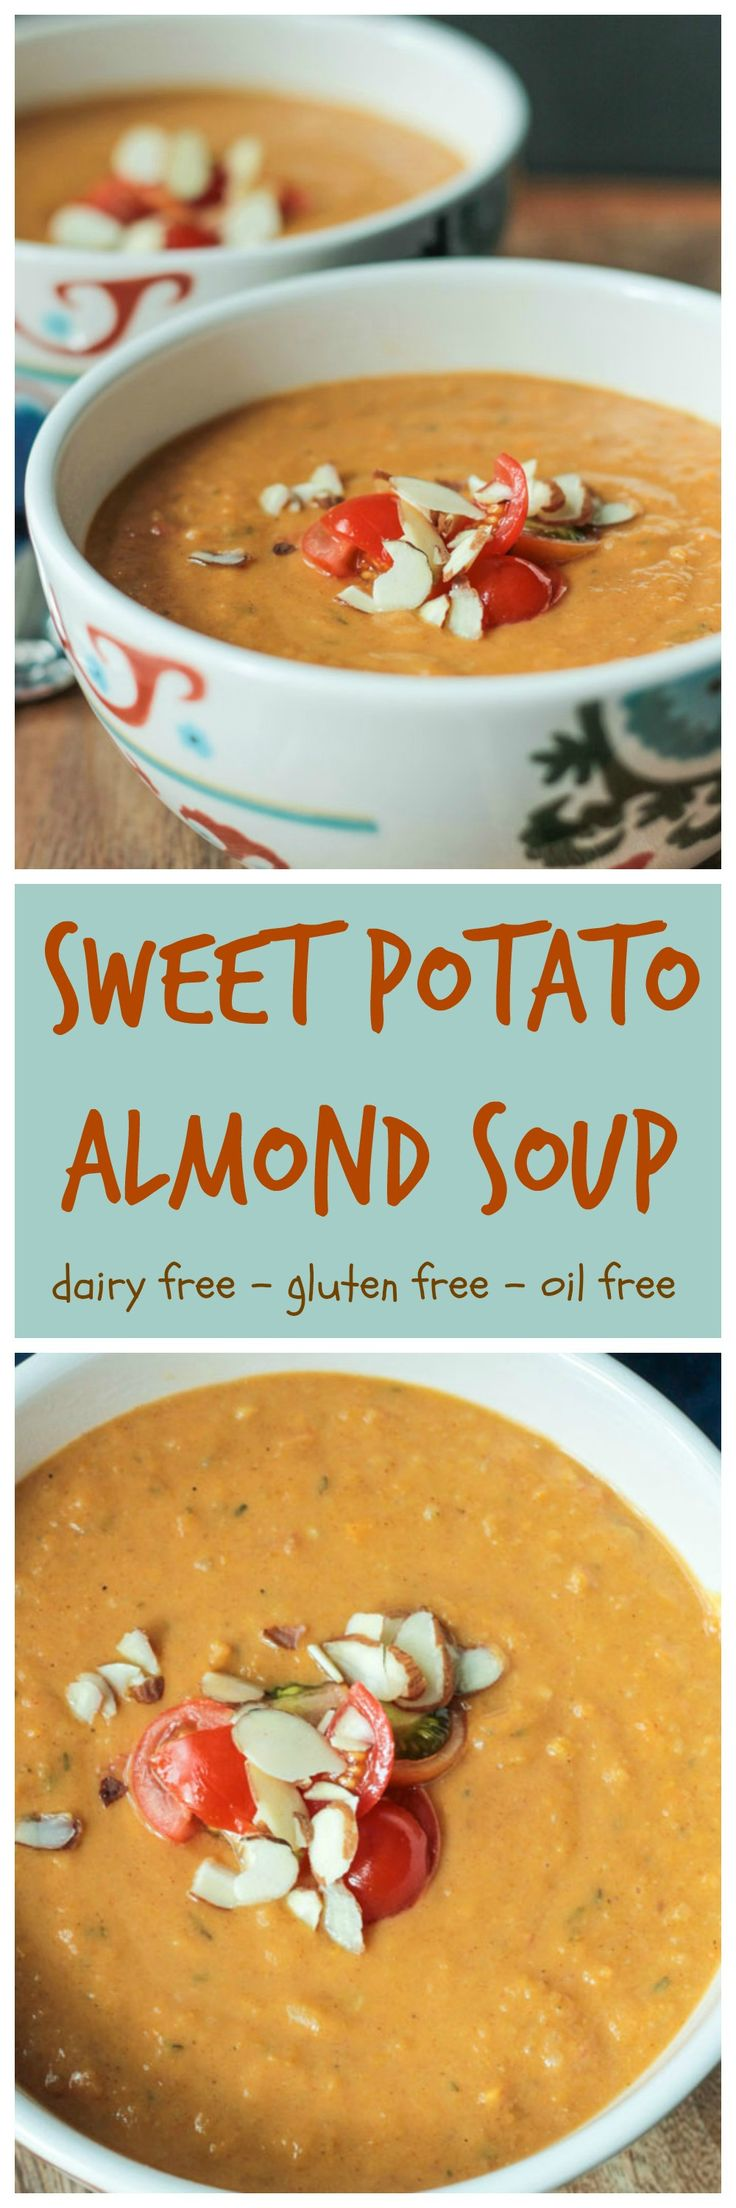 Sweet Potato Almond Soup - a thick and hearty, deeply flavored dairyfree soup to get you through these cooler months!